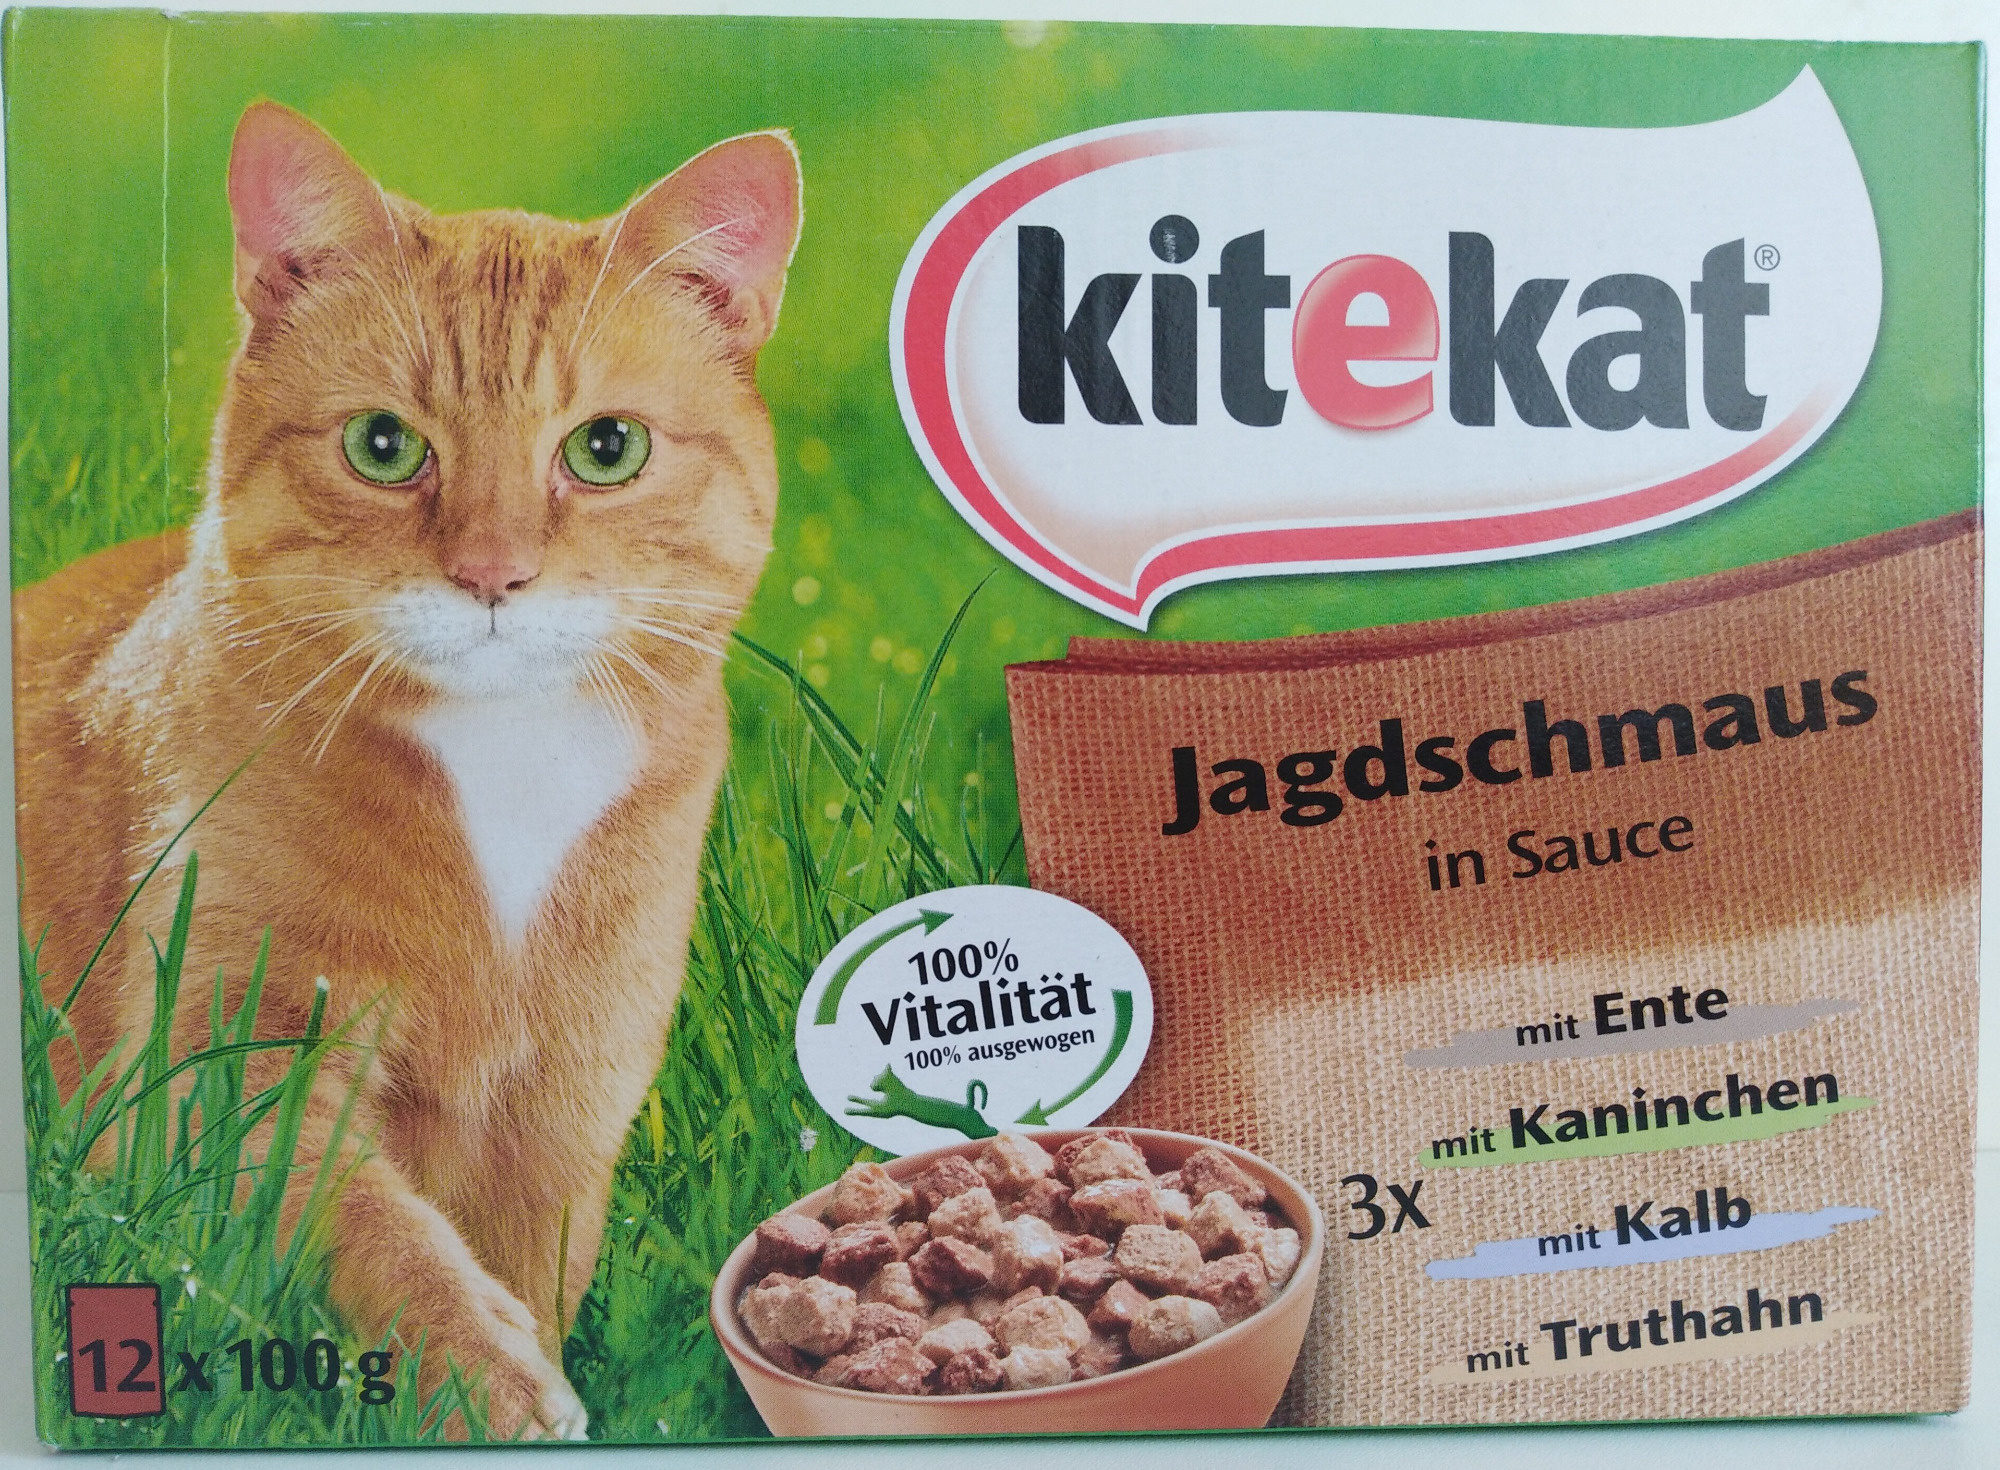 Jagdschmaus in Sauce - Product